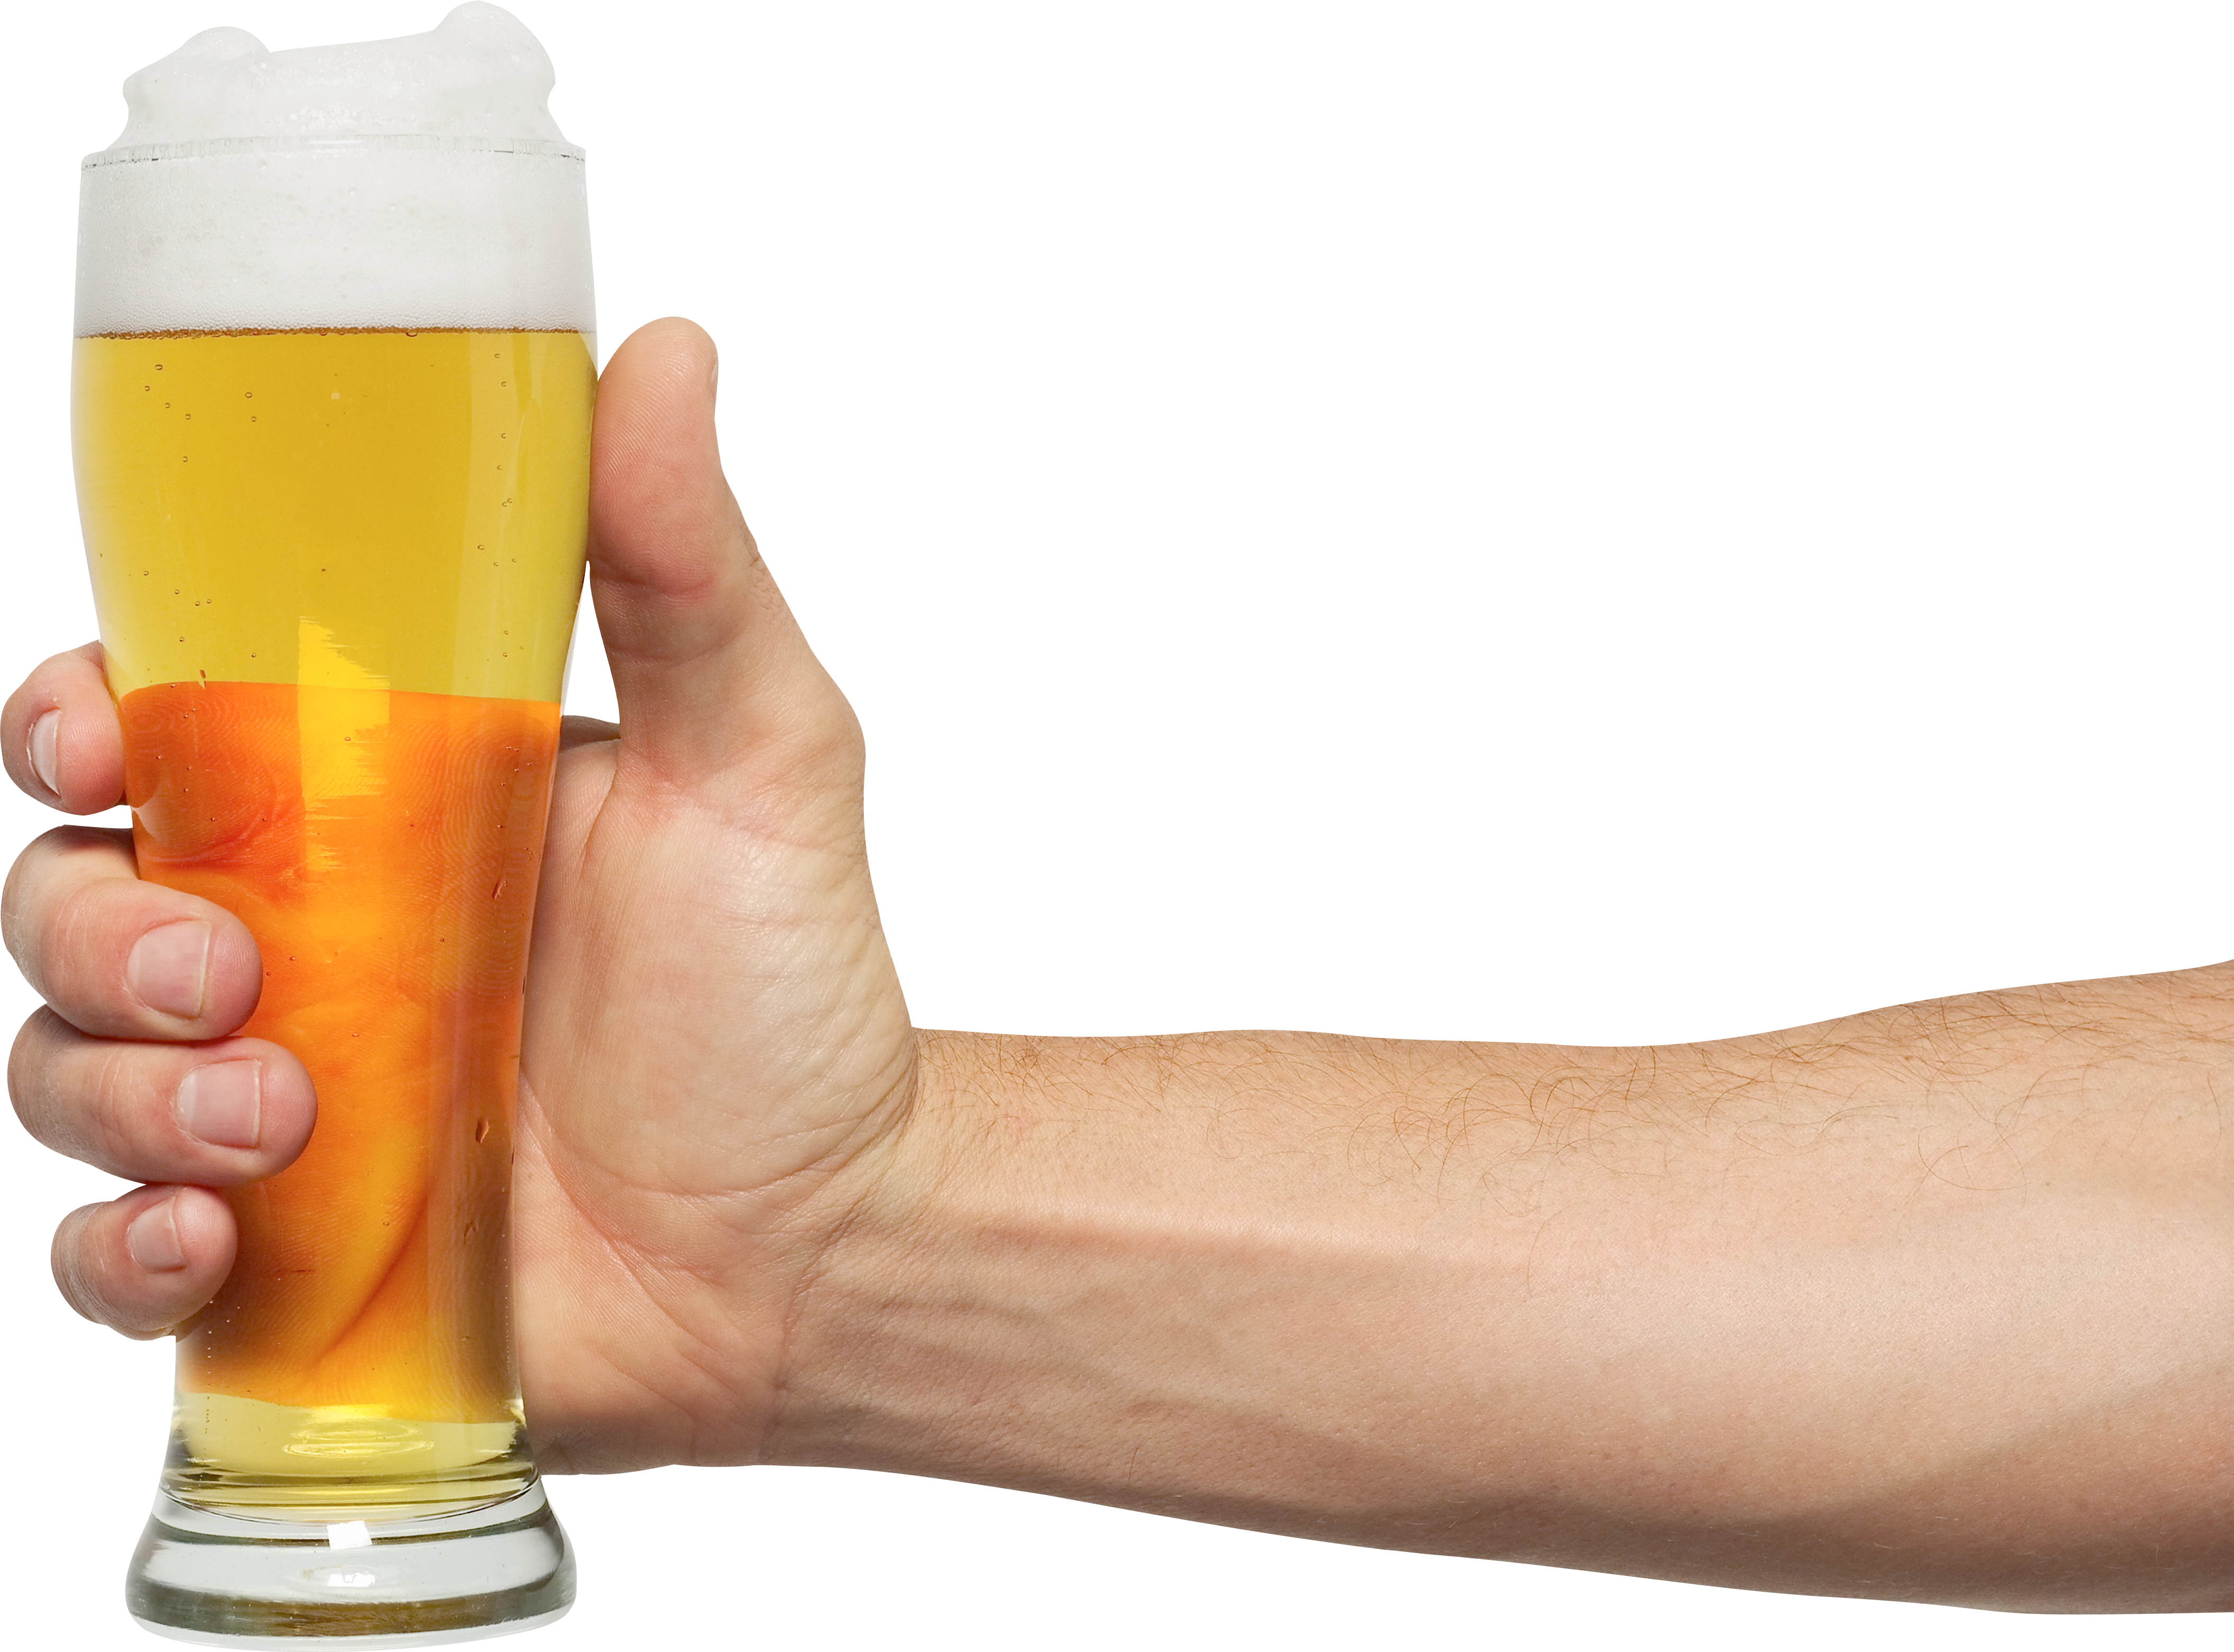 Sun holding beer clipart graphic library stock Hand Holding Glass of Beer Two | Isolated Stock Photo by noBACKS.com graphic library stock